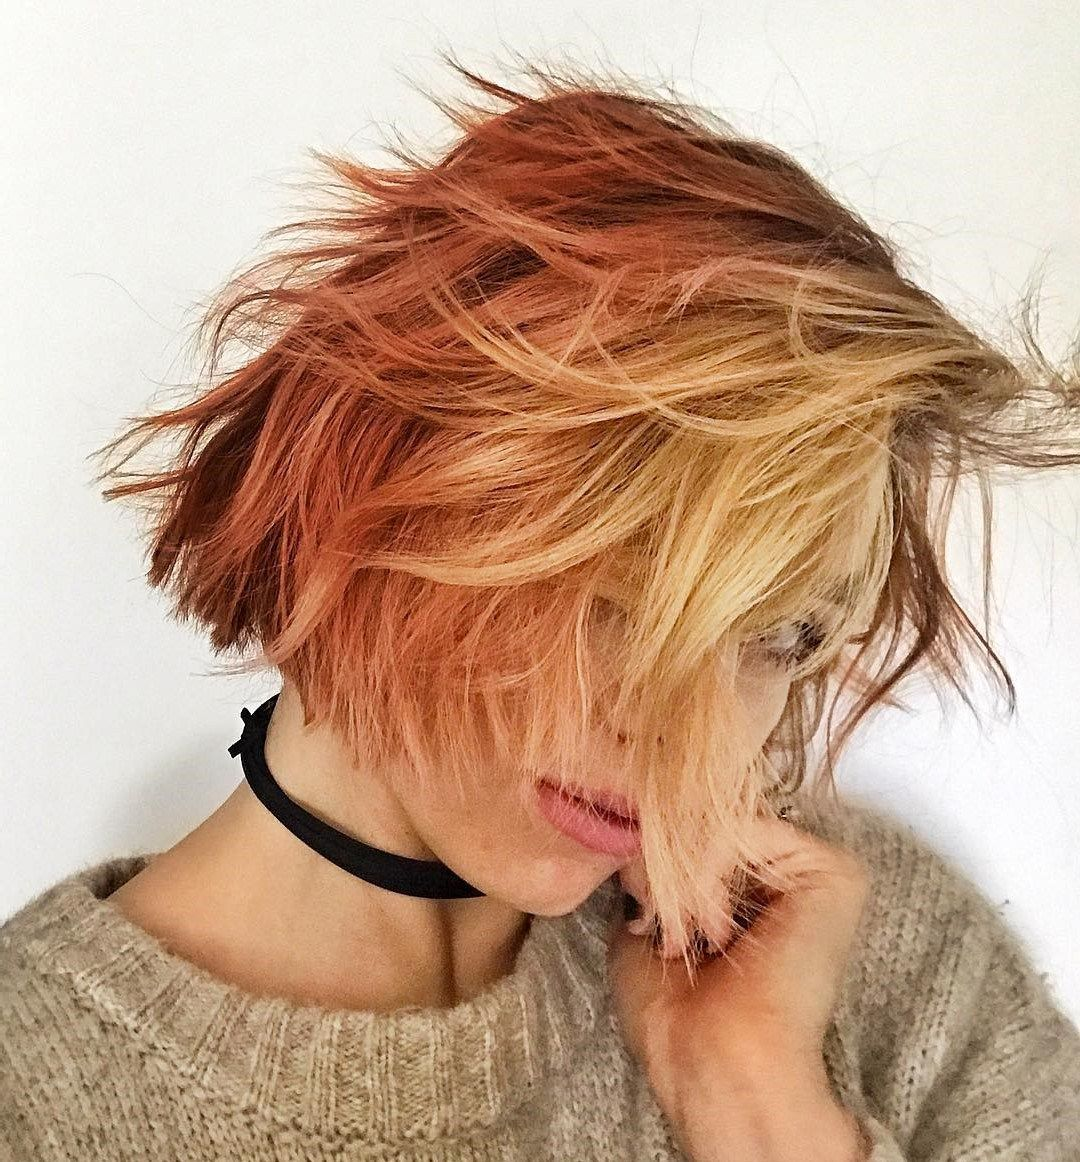 ways to fix bad hair days bad hair bobs and blondes